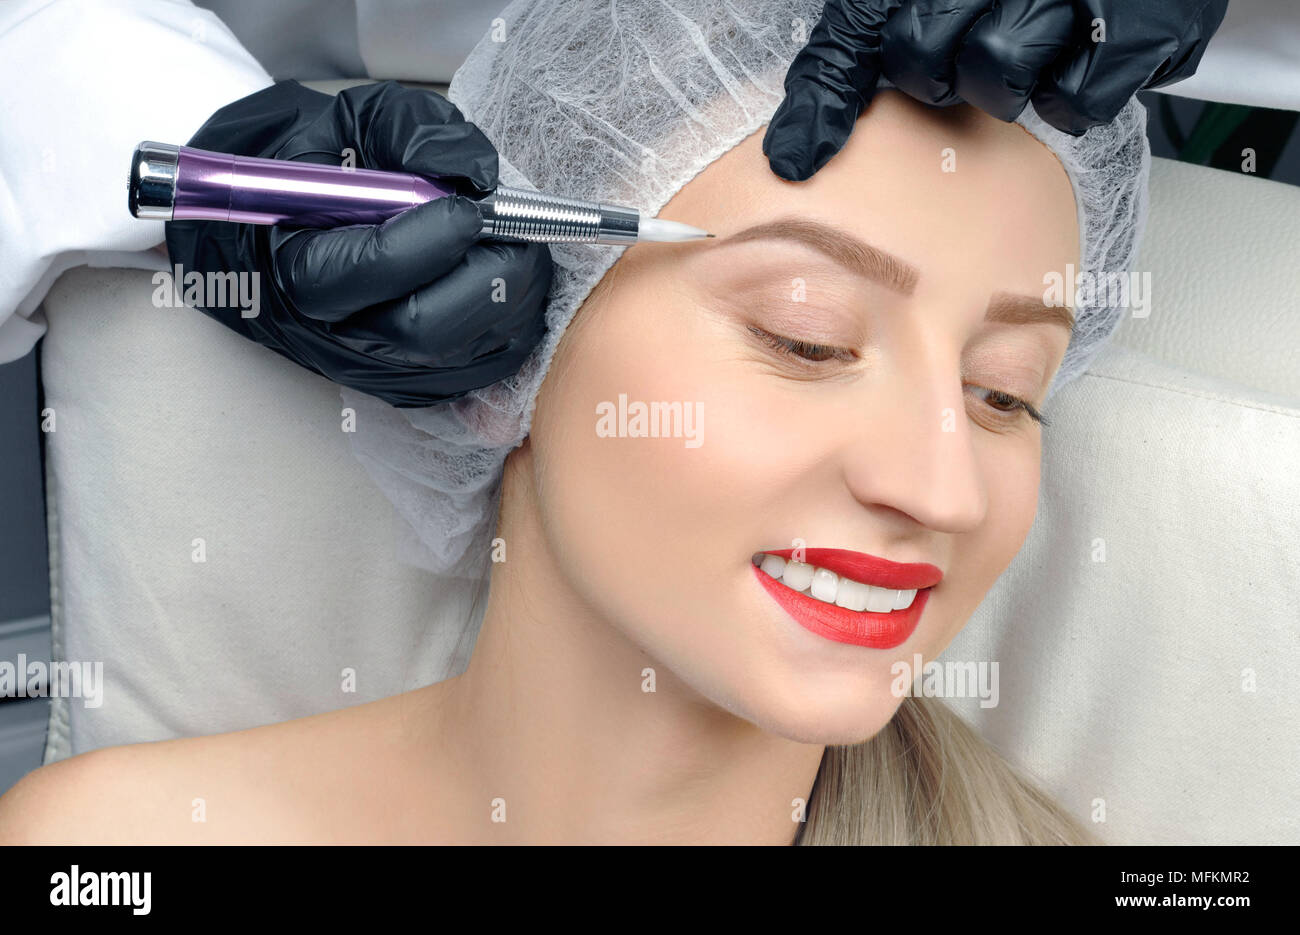 Microblading eyebrows cosmetologist making permanent for Eyebrow tattoo aftercare instructions